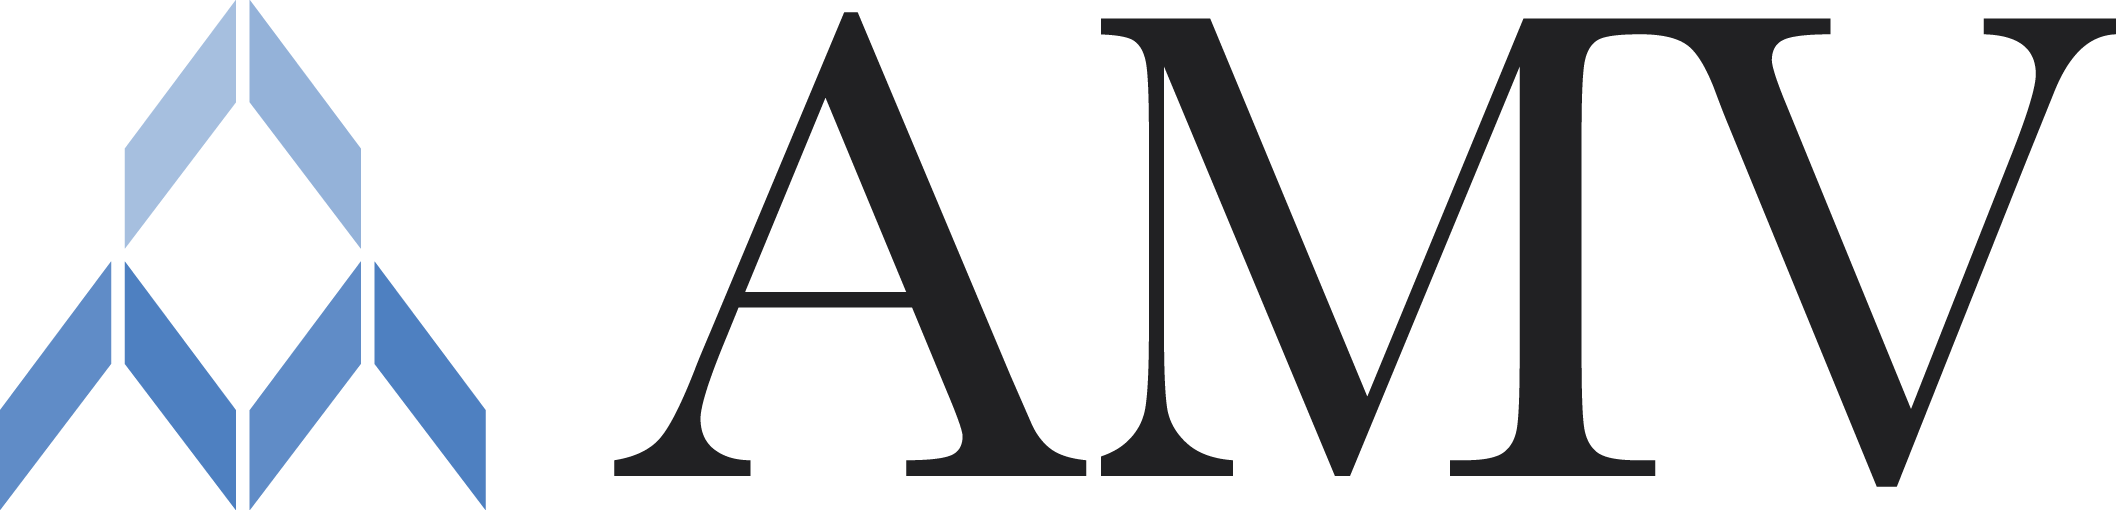 Asset Management Ventures logo